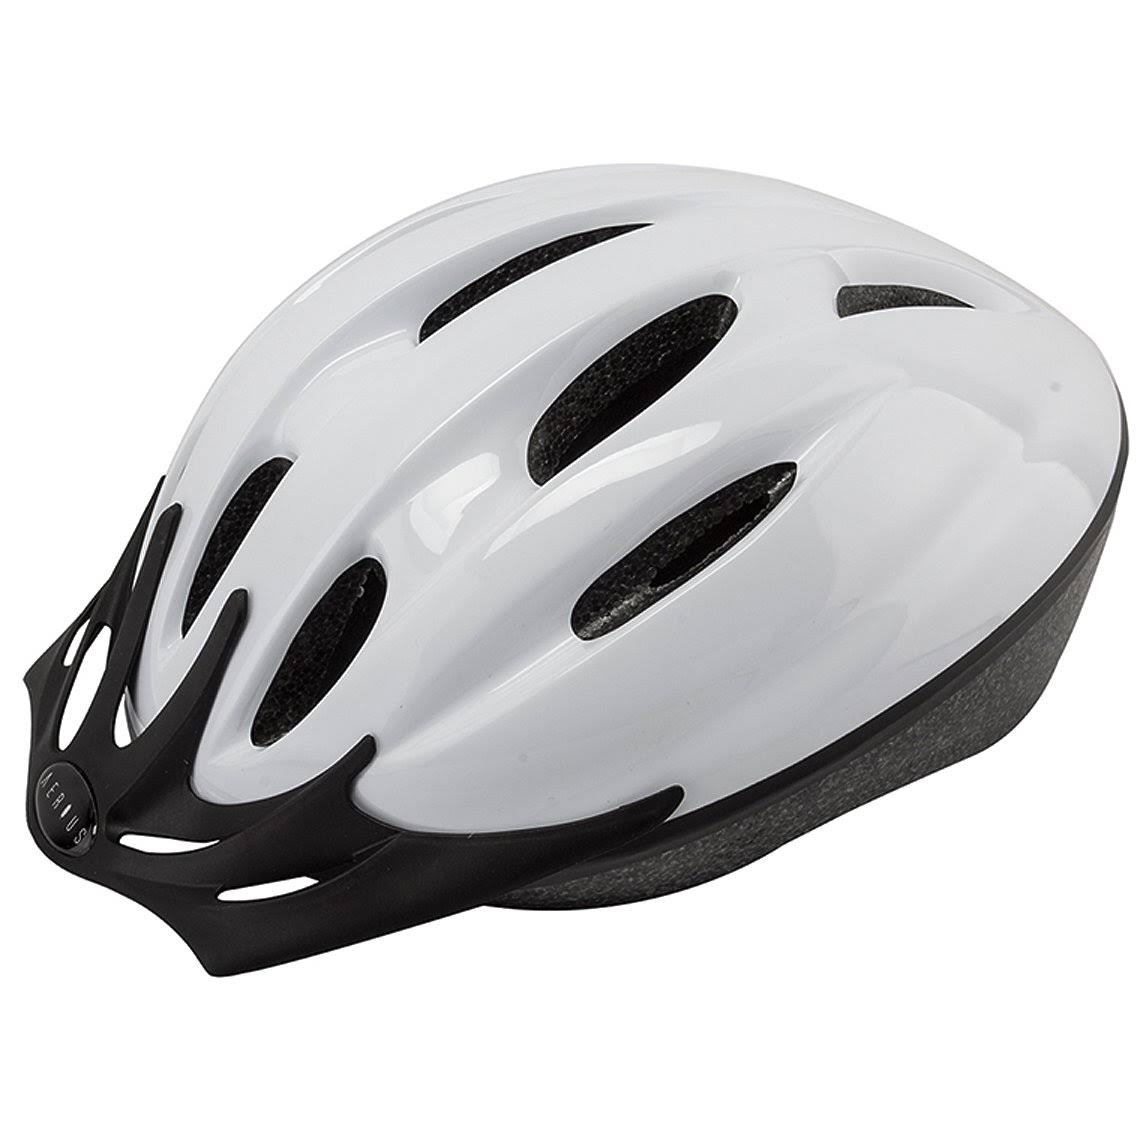 Aerius V10 Bicycle Helmet - White, Small and Medium